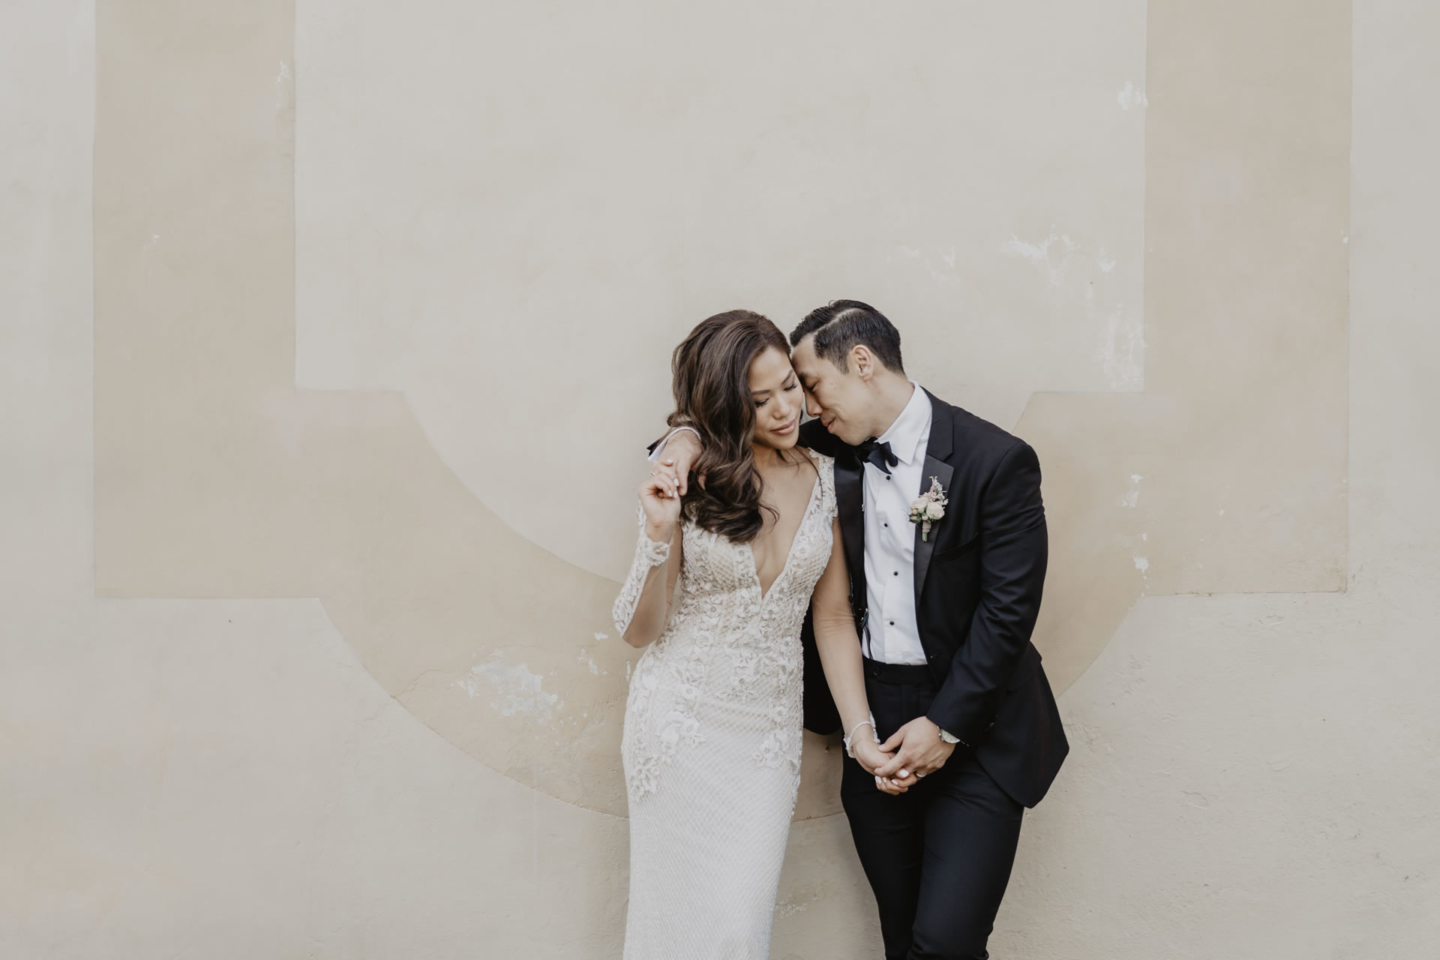 - 56 :: From Los angeles to Florence: a glamour asiatic wedding :: Luxury wedding photography - 55 ::  - 56